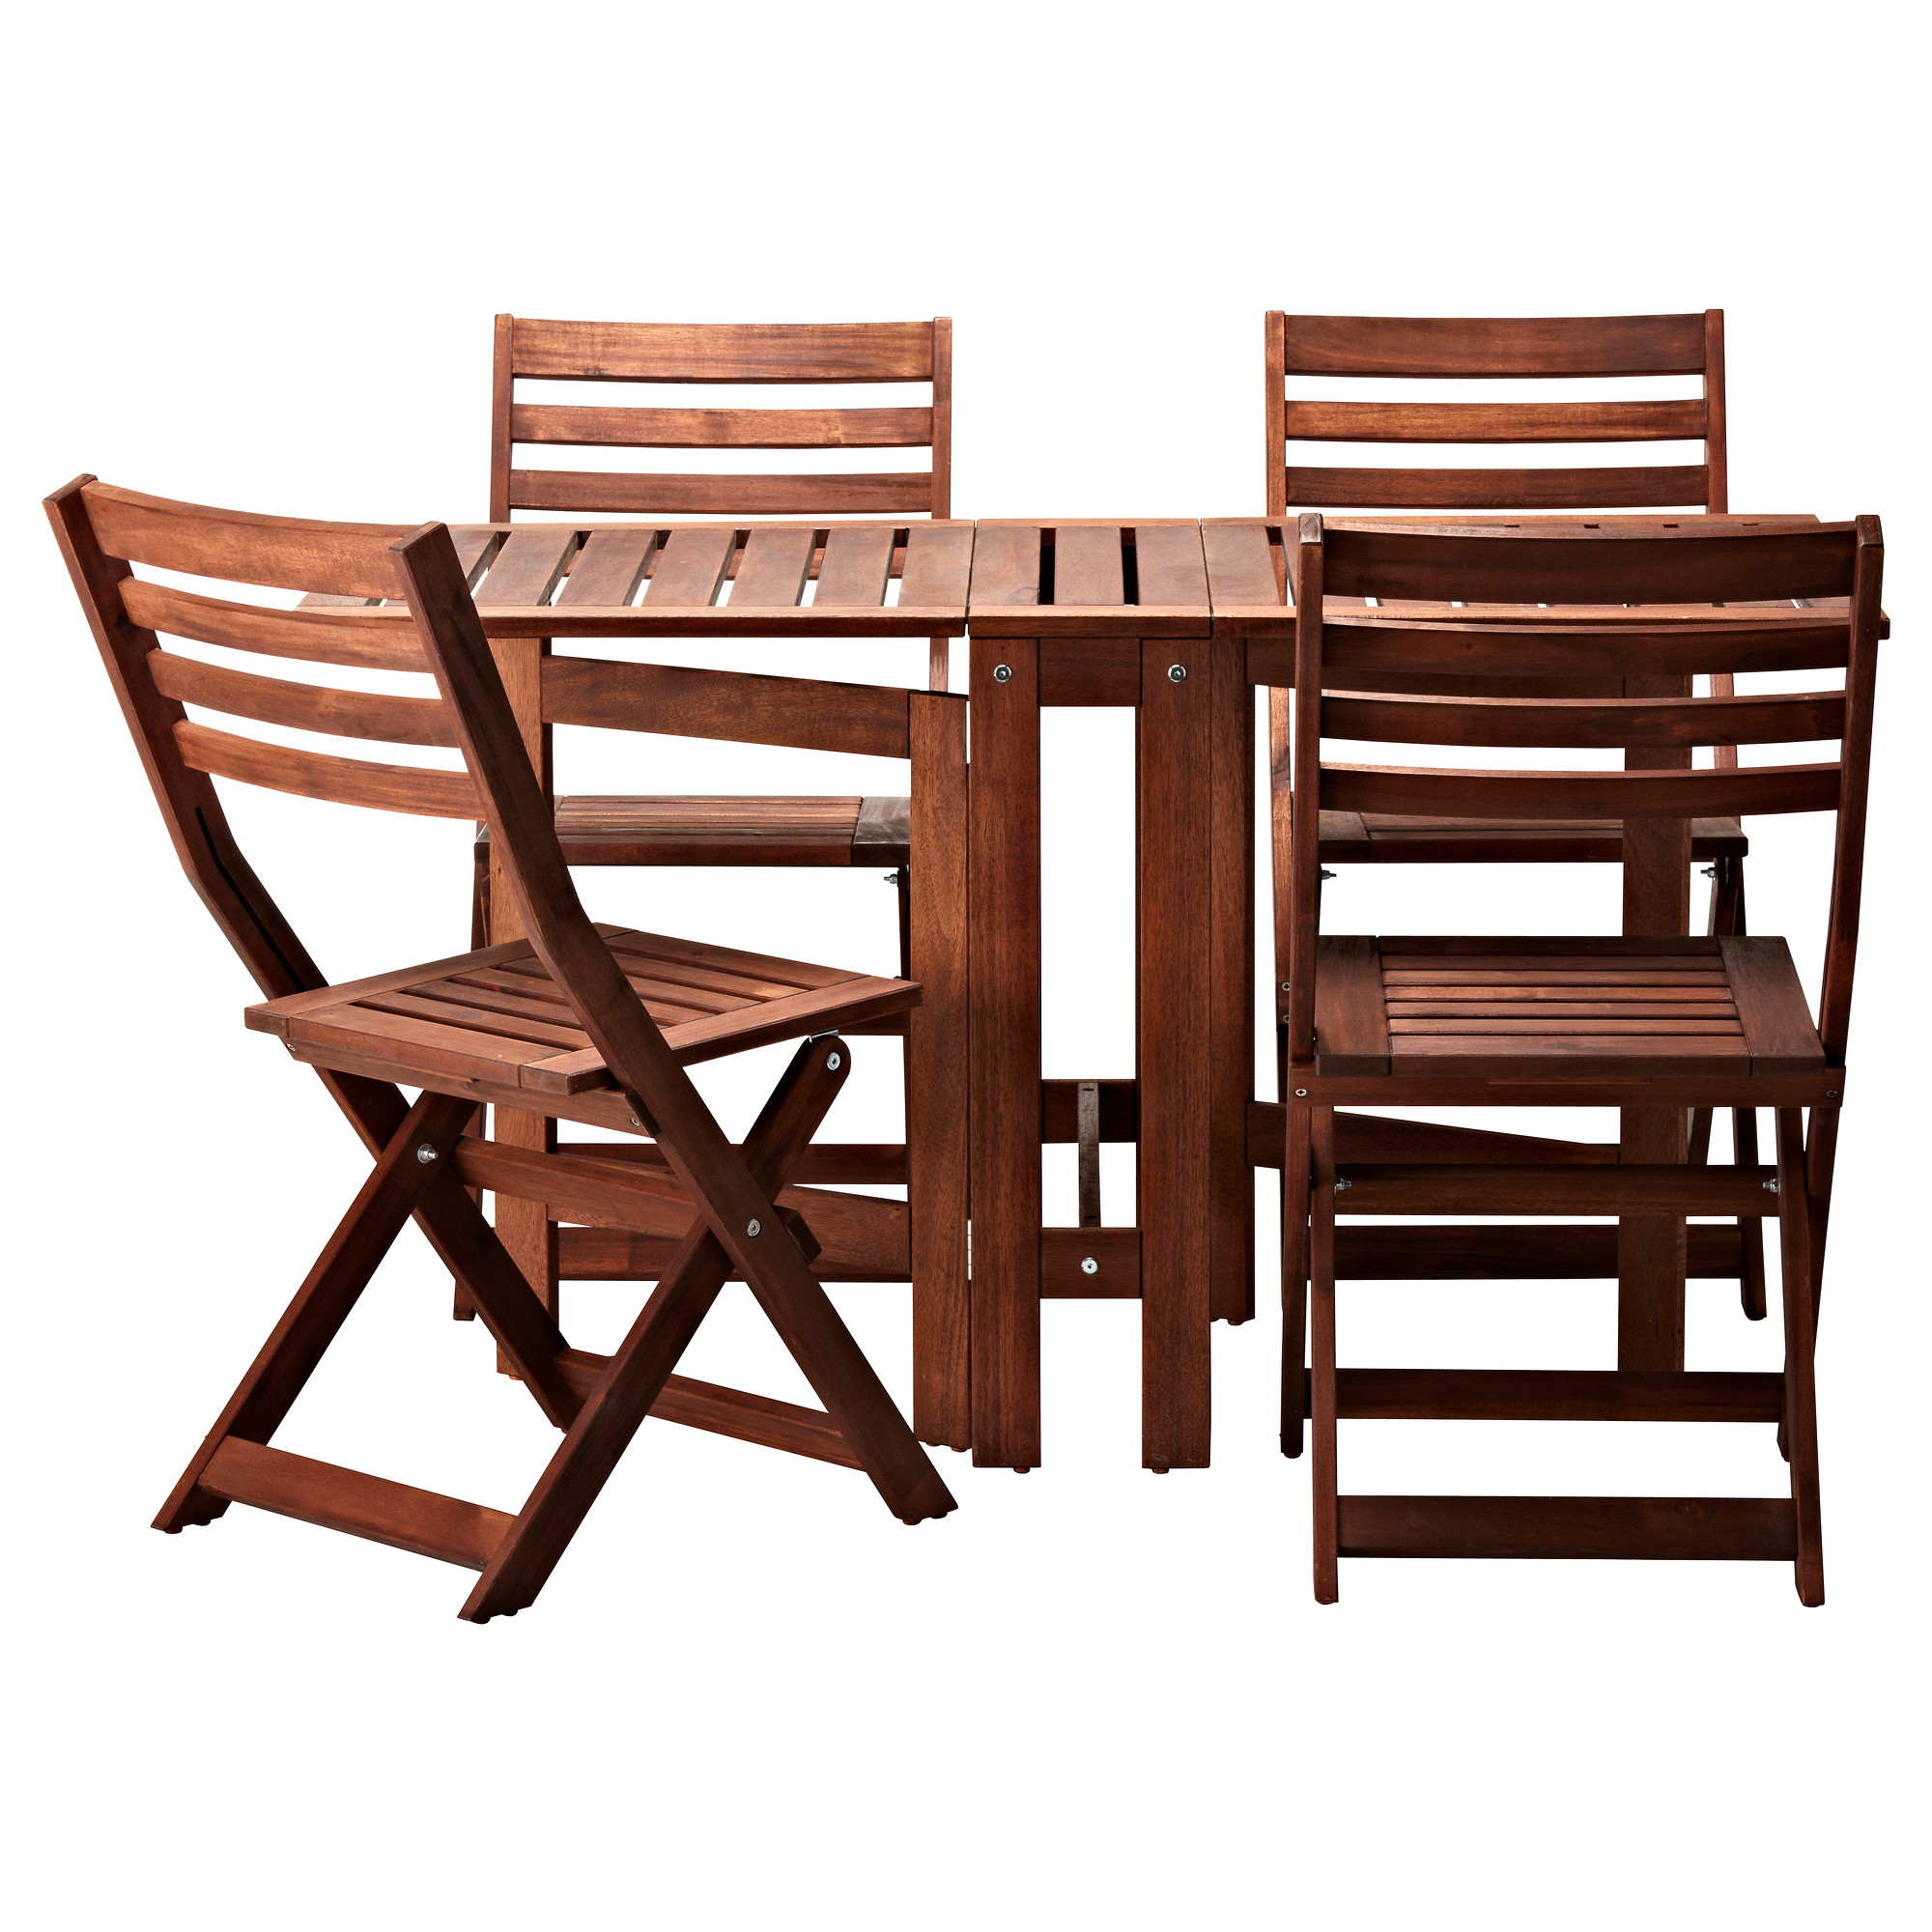 outdoor table and chairs äpplarö table and 4 folding chairs, outdoor, brown stained brown QQFYZMZ